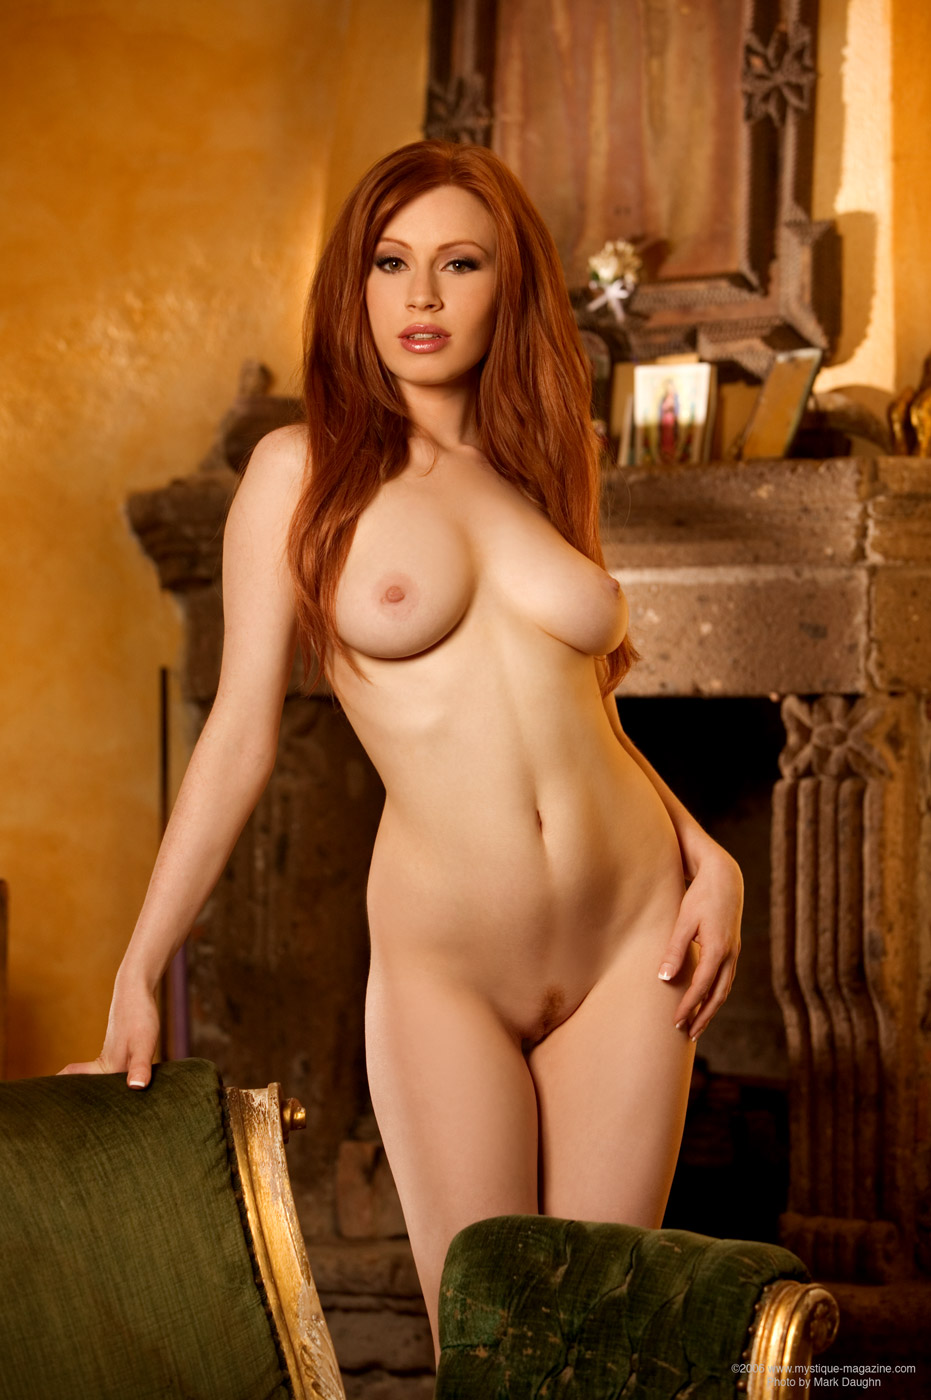 Calina jetley in nude and pussy image